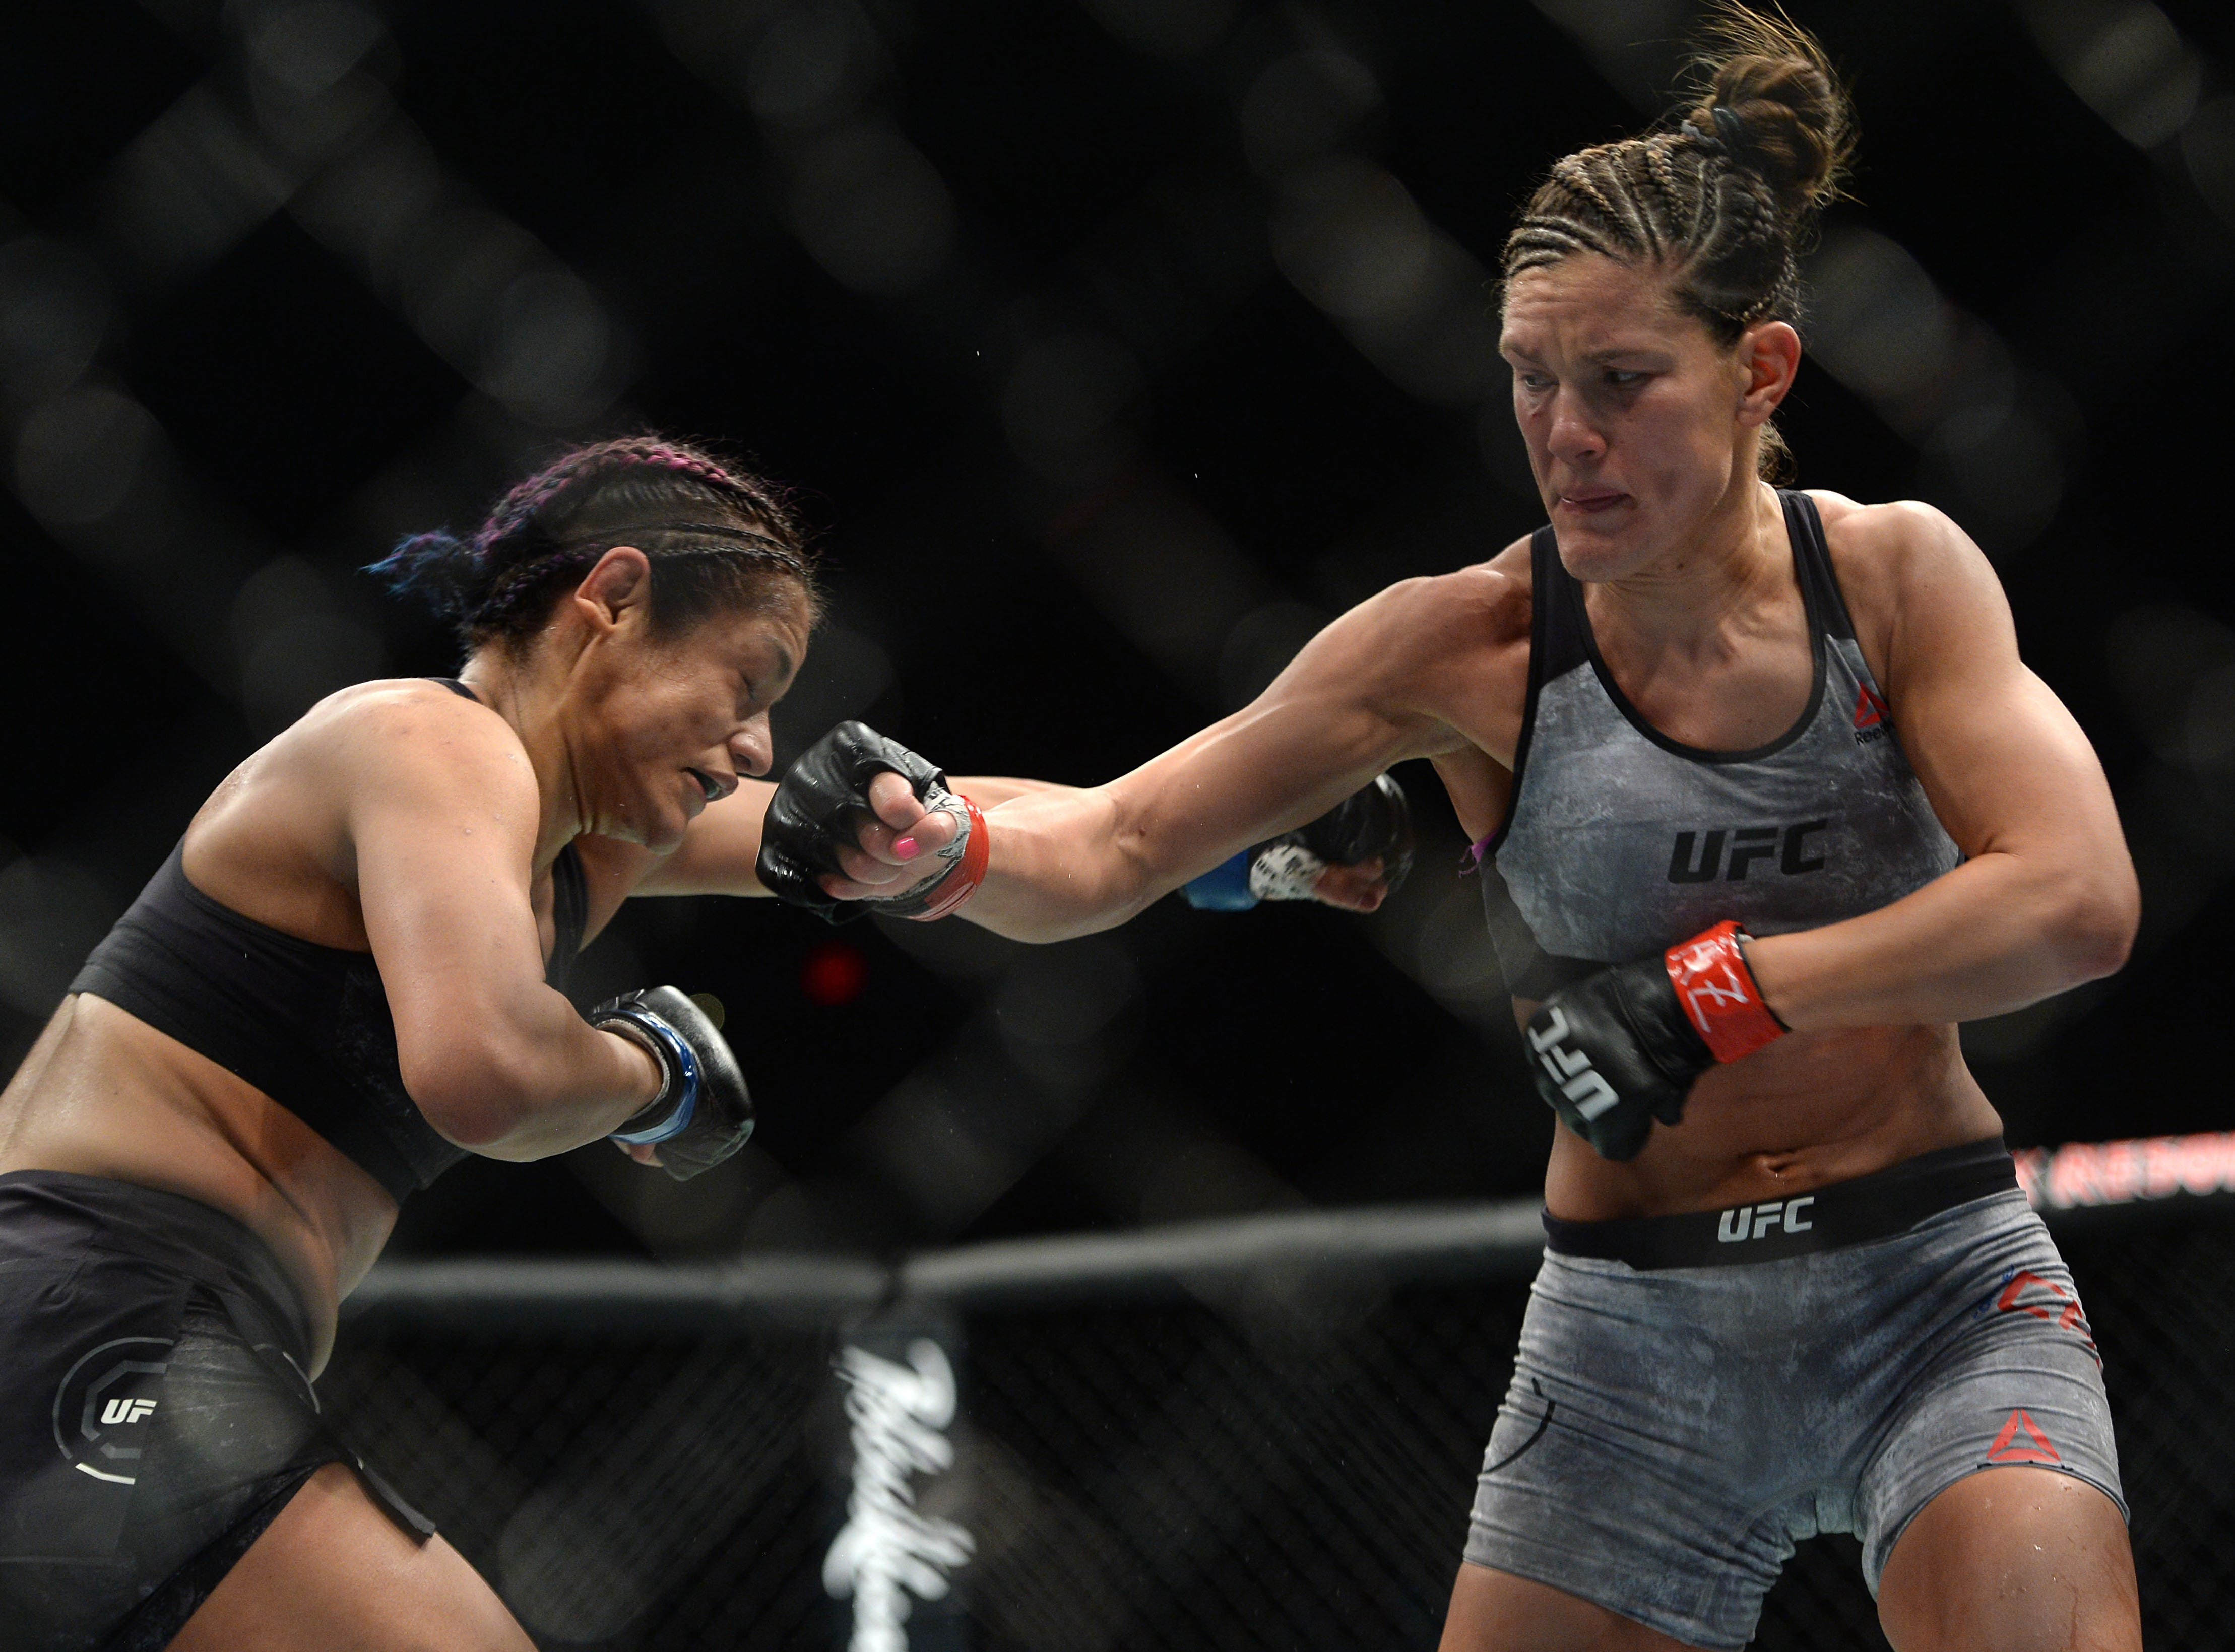 Cynthia Calvillo lands a body shot on Cortney Casey during fight at Talking Stick Resort Arena.